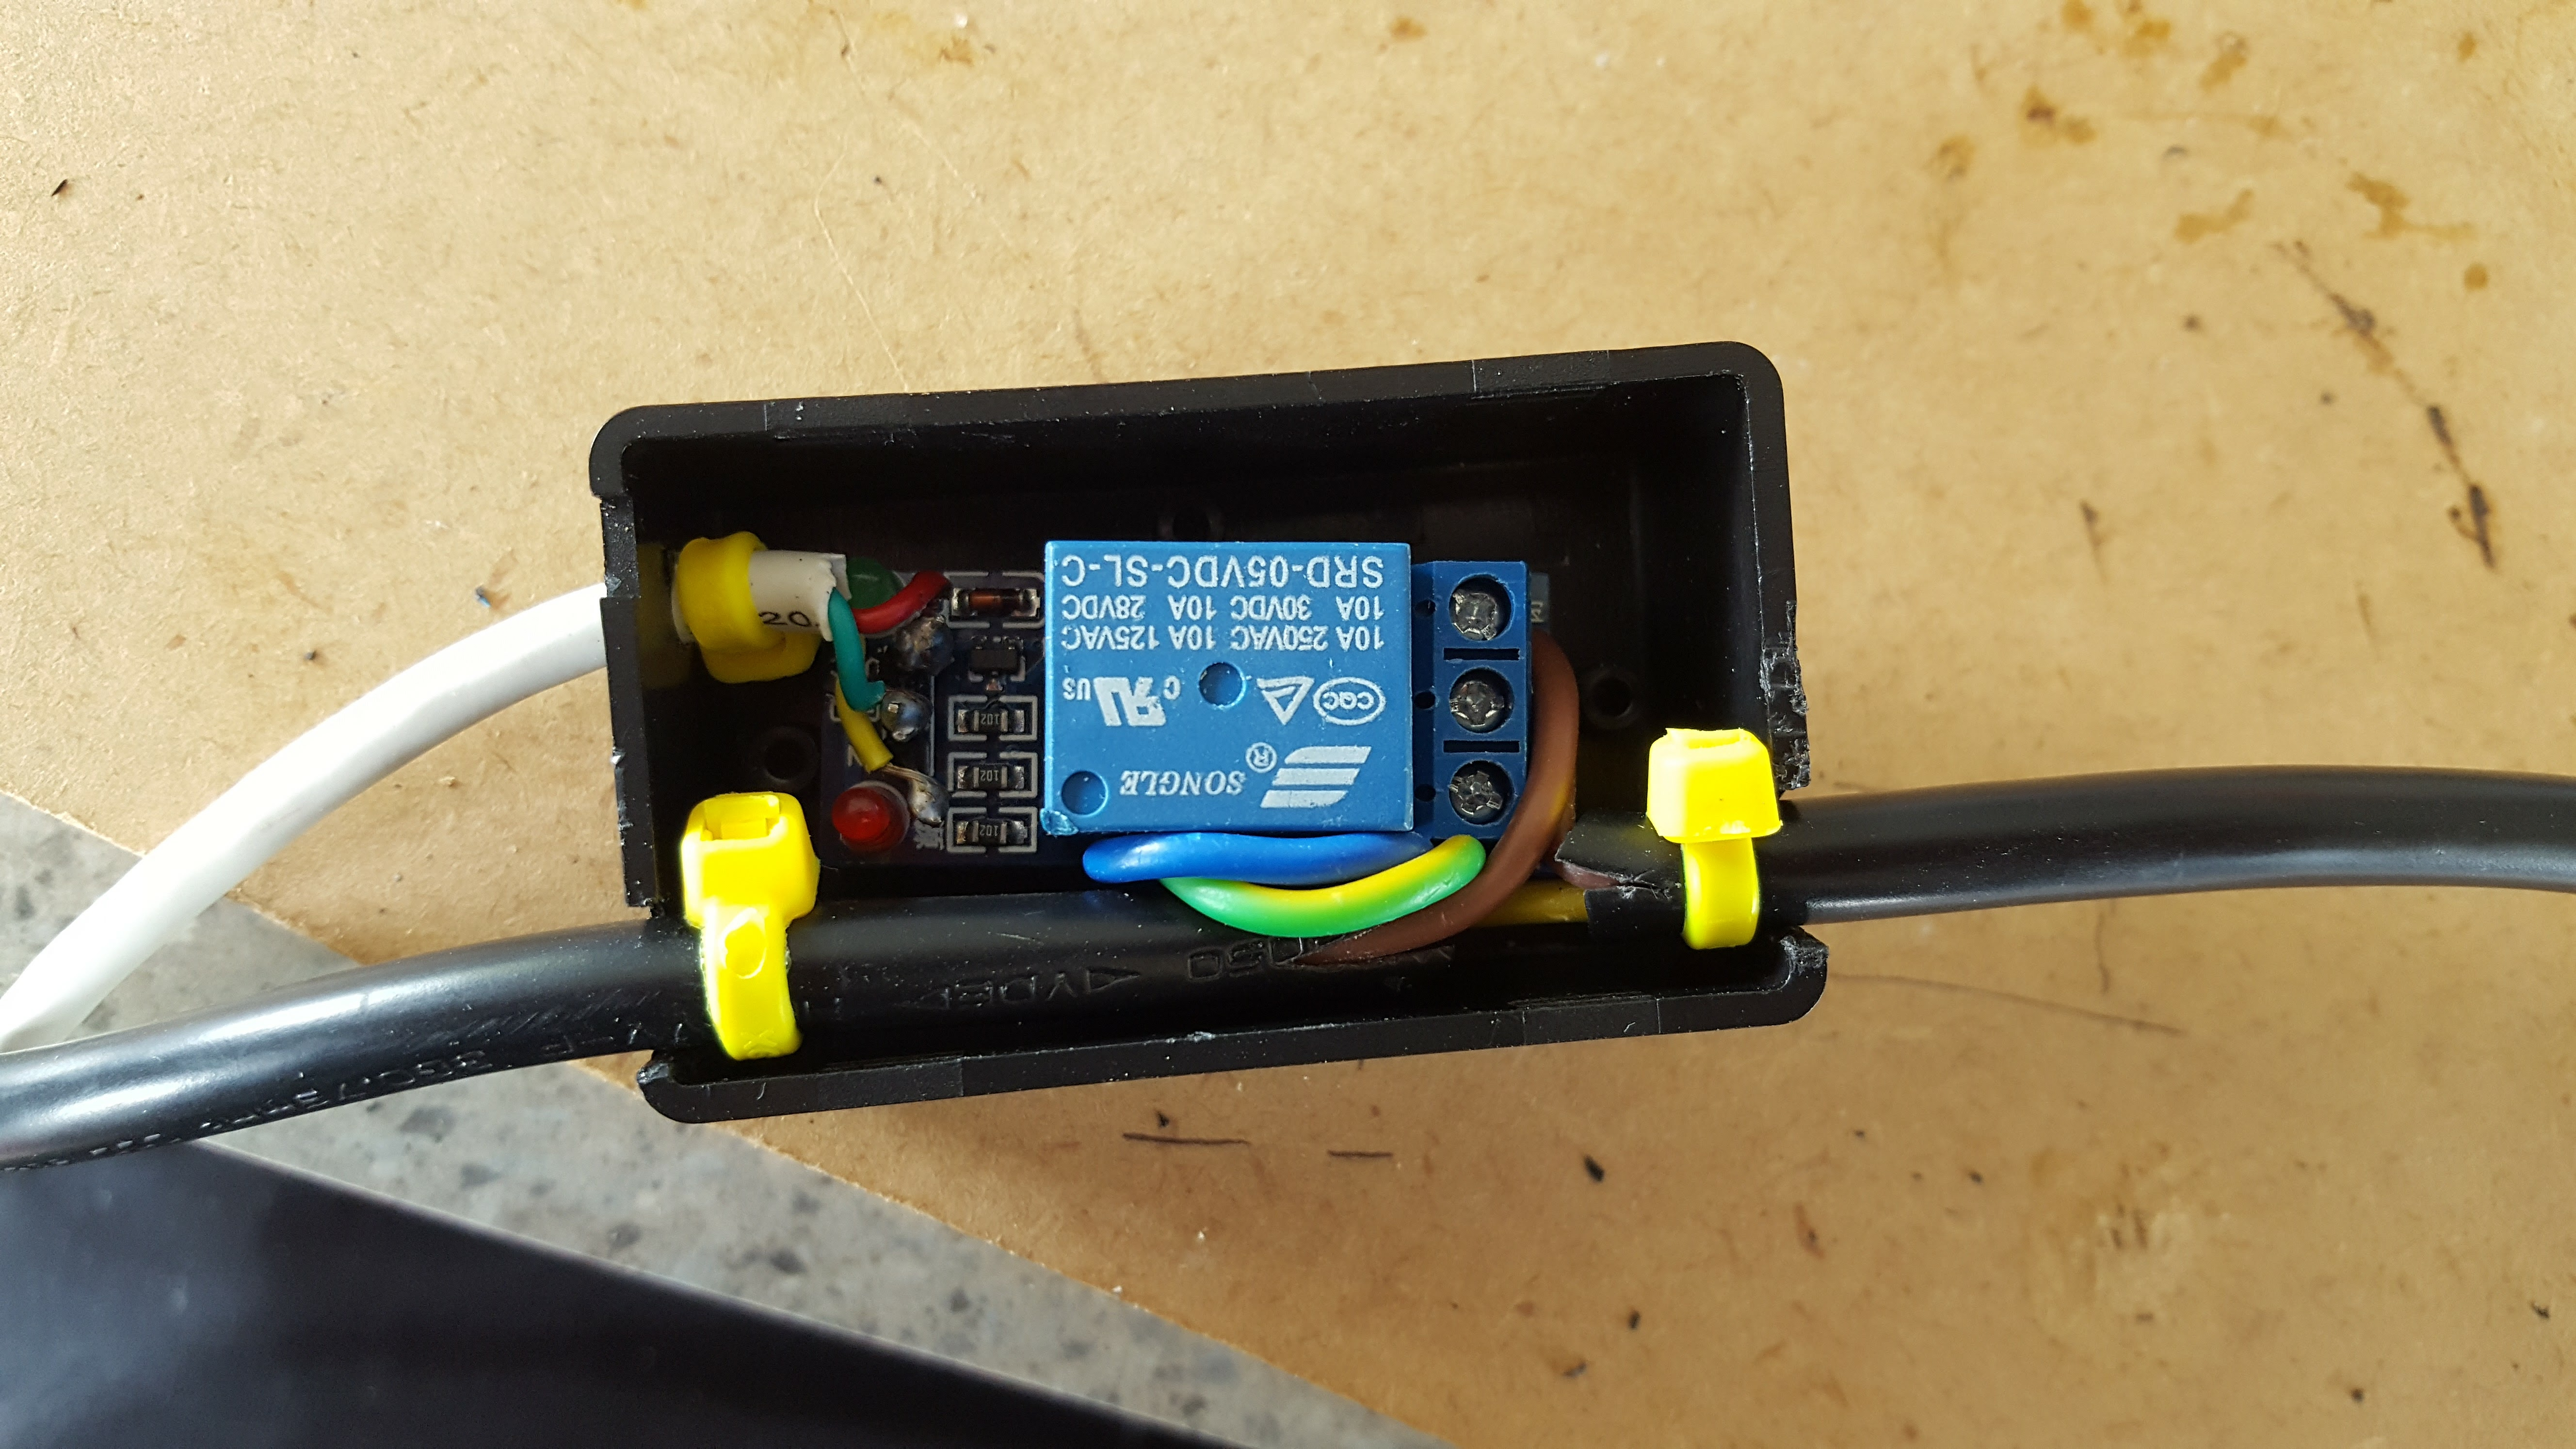 Tropical Aquarium Techconz Power Relay Minecraft 240v Securely In A Plastic Case Inline With The Light Hoods Cable This Part Of Circuit Is Isolated From Arduino Board And Only